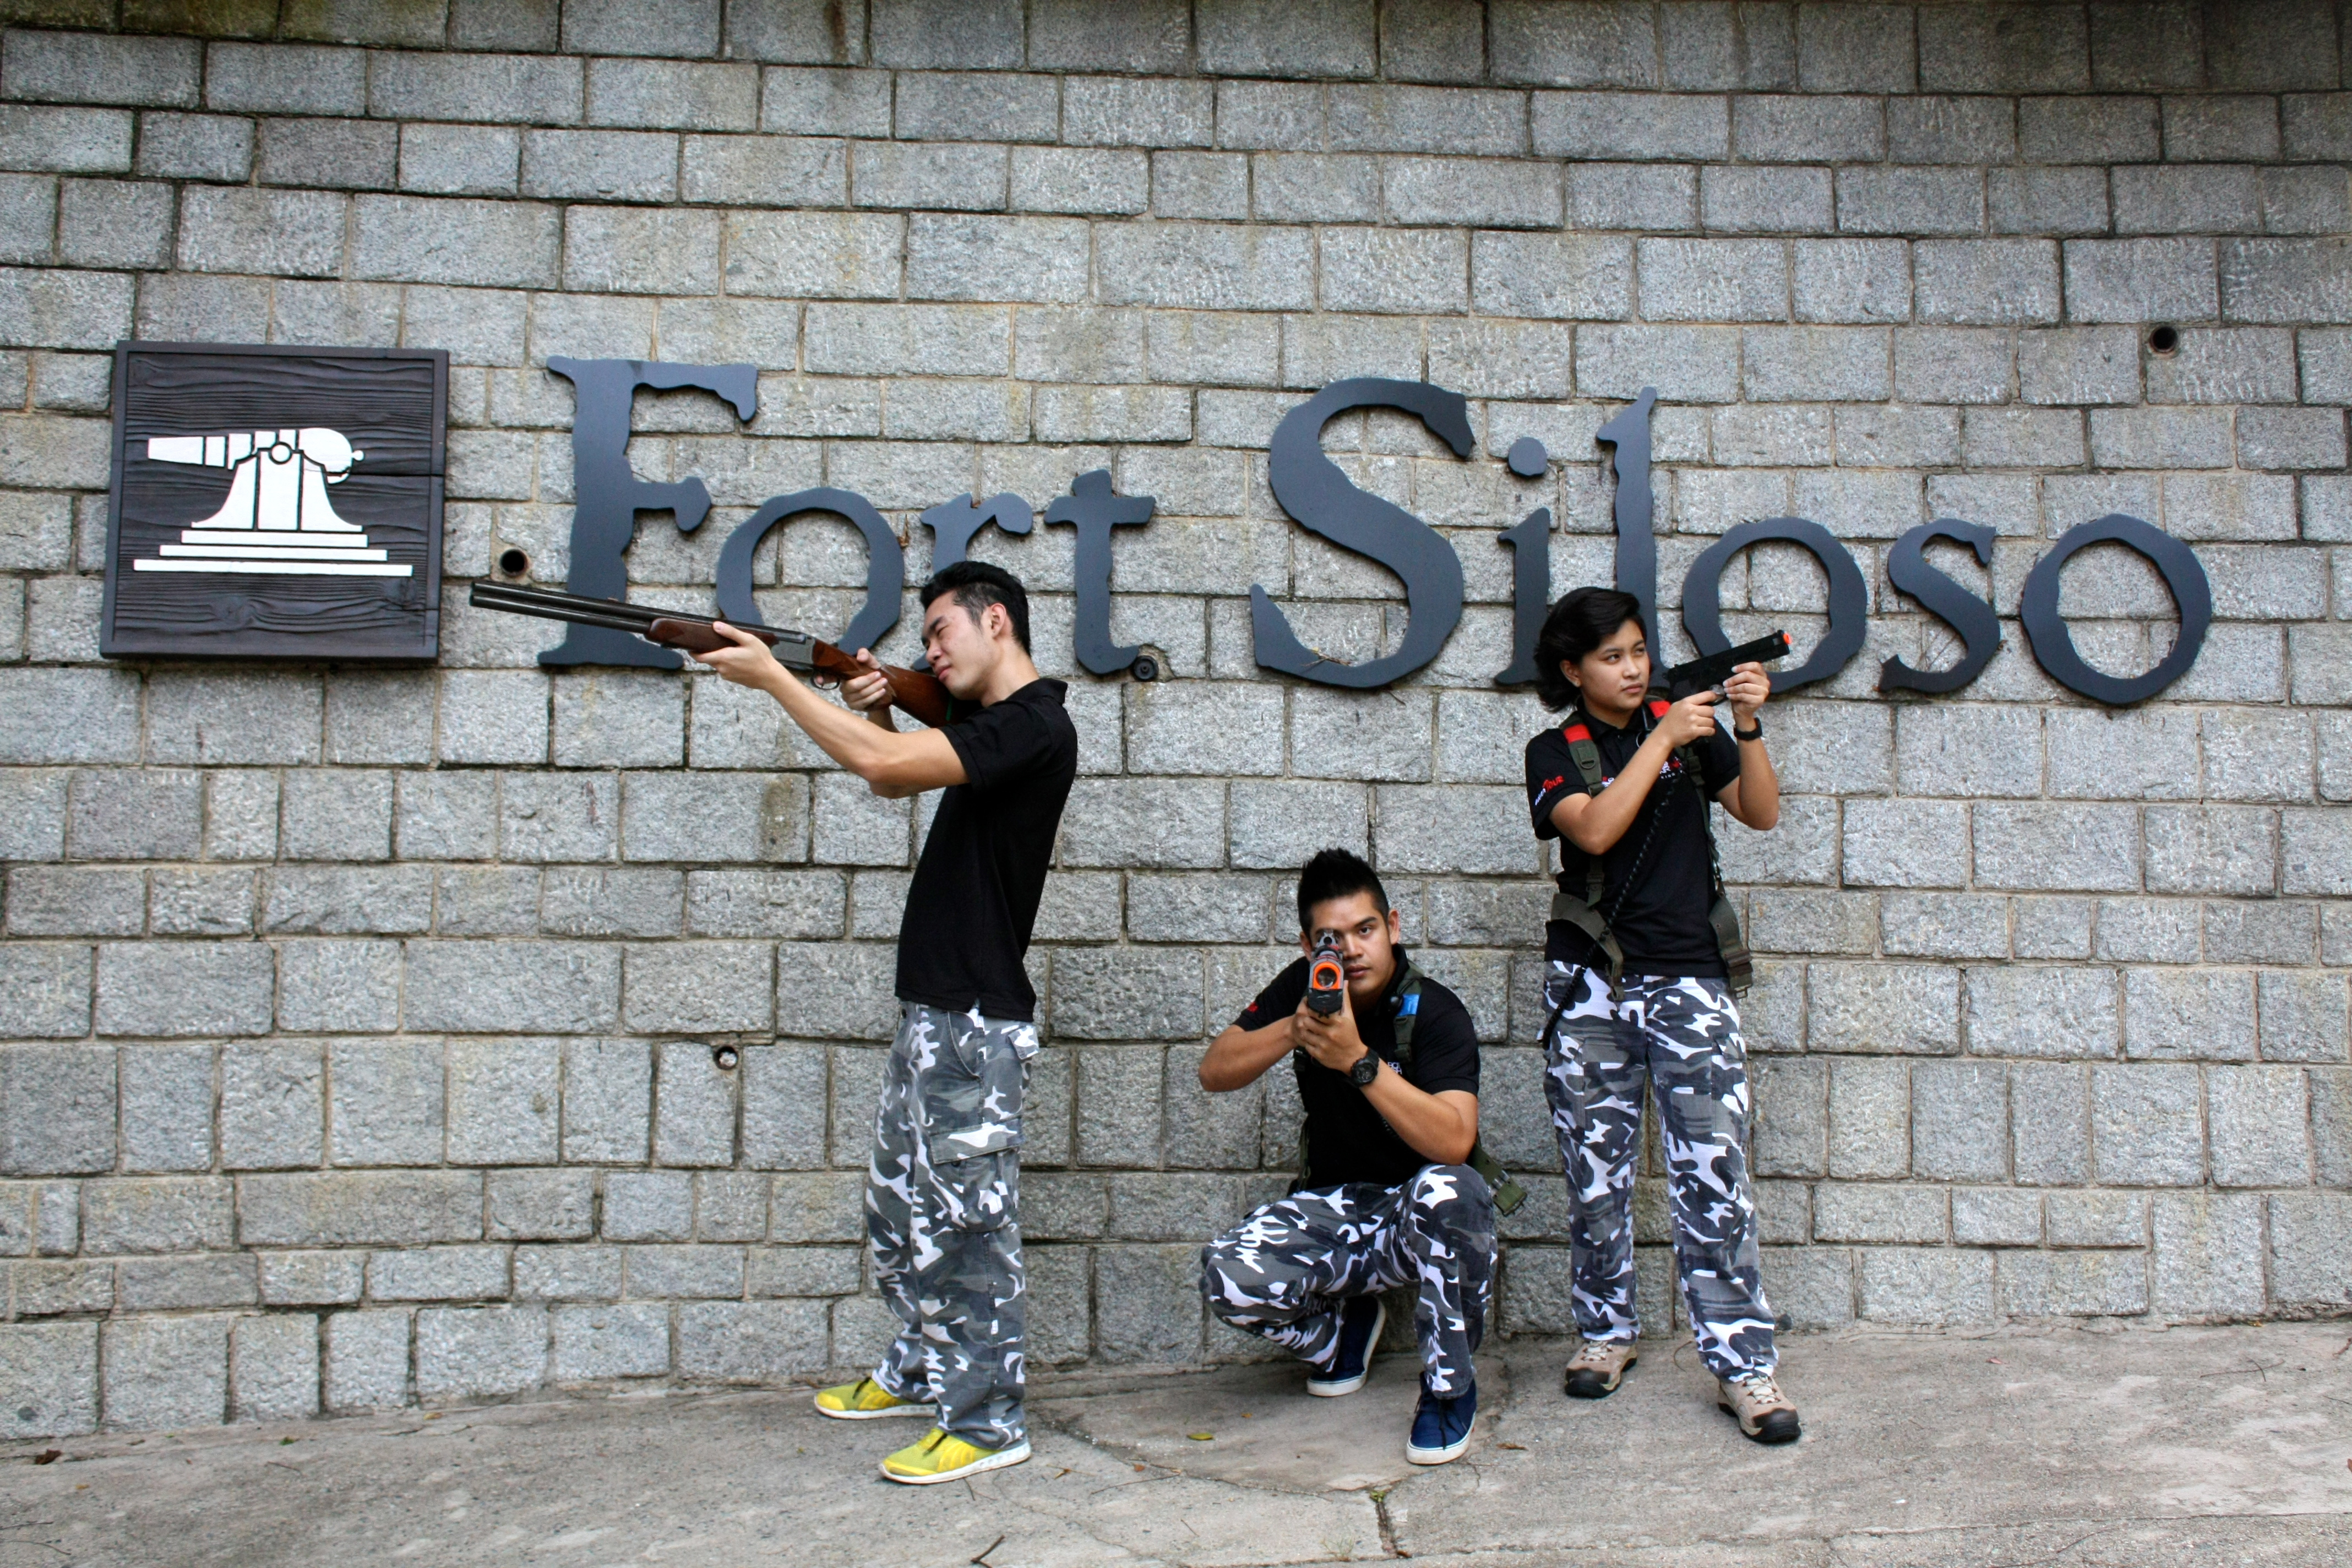 story themed laser tag laser quest games in singapore fort combat skirmish live